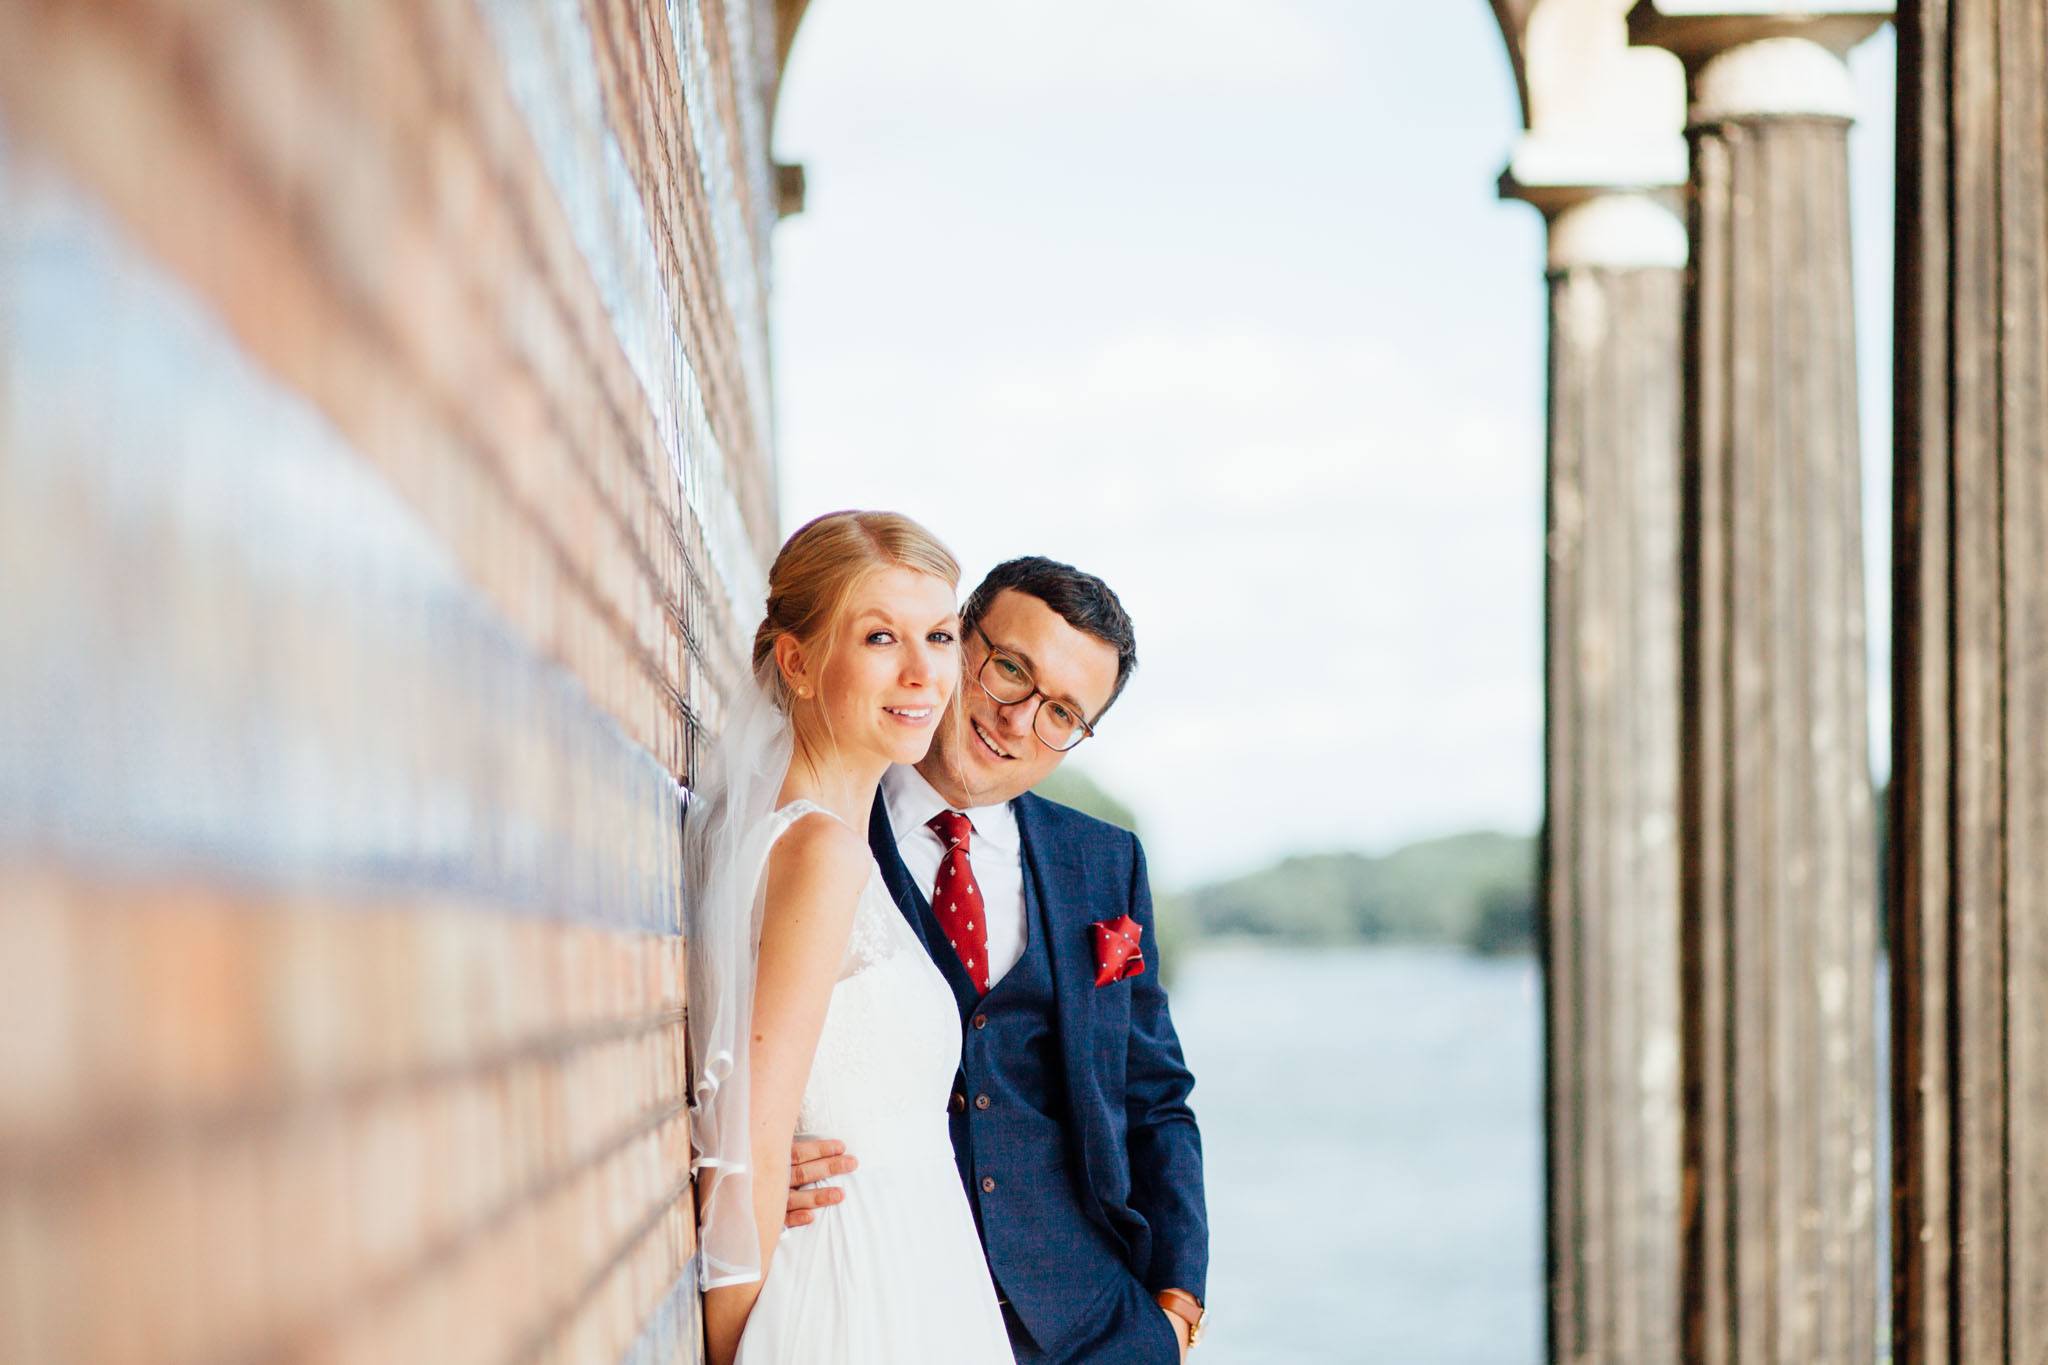 heilandskirche-sacrow-wedding-photographer